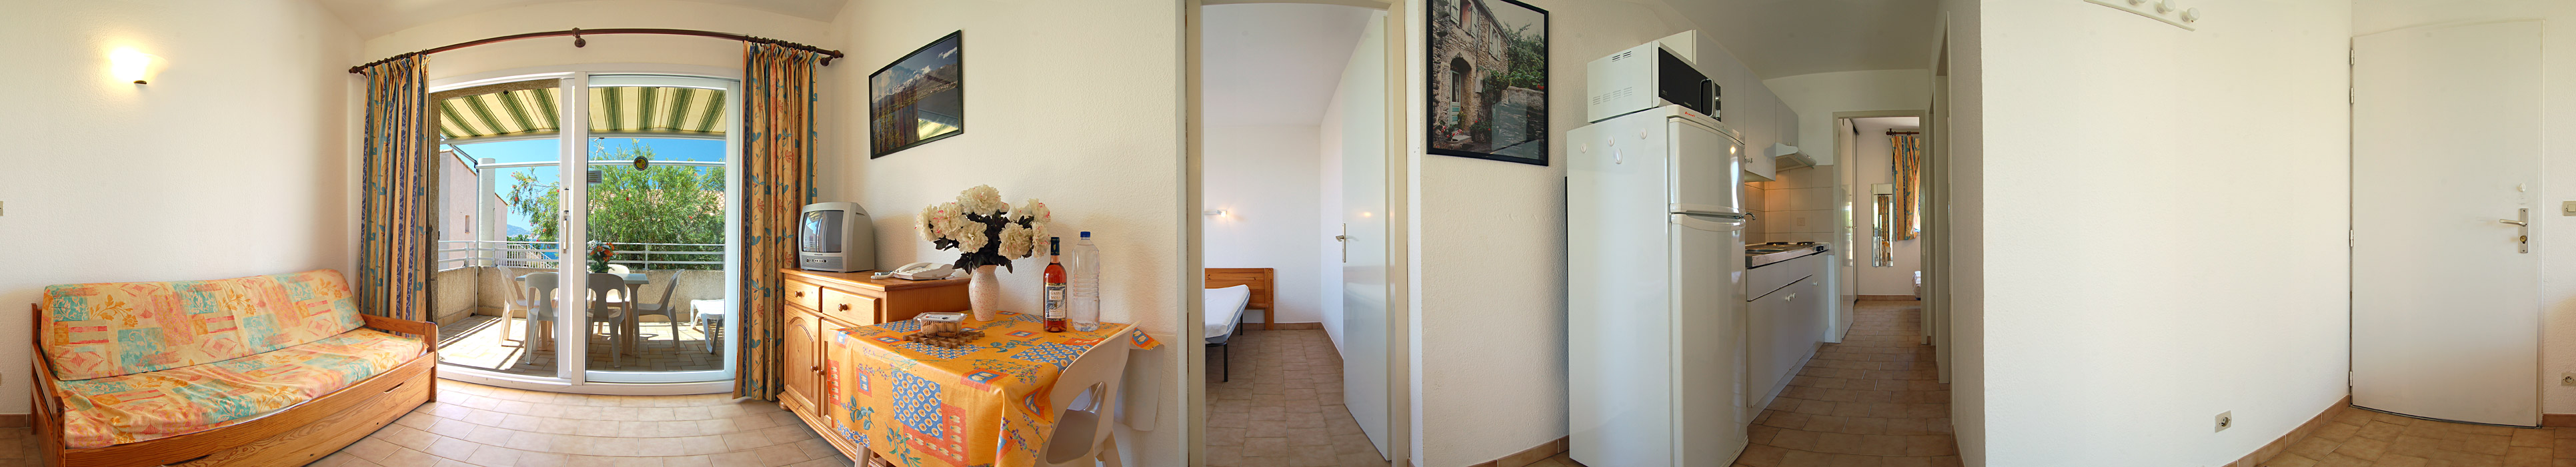 residence corse